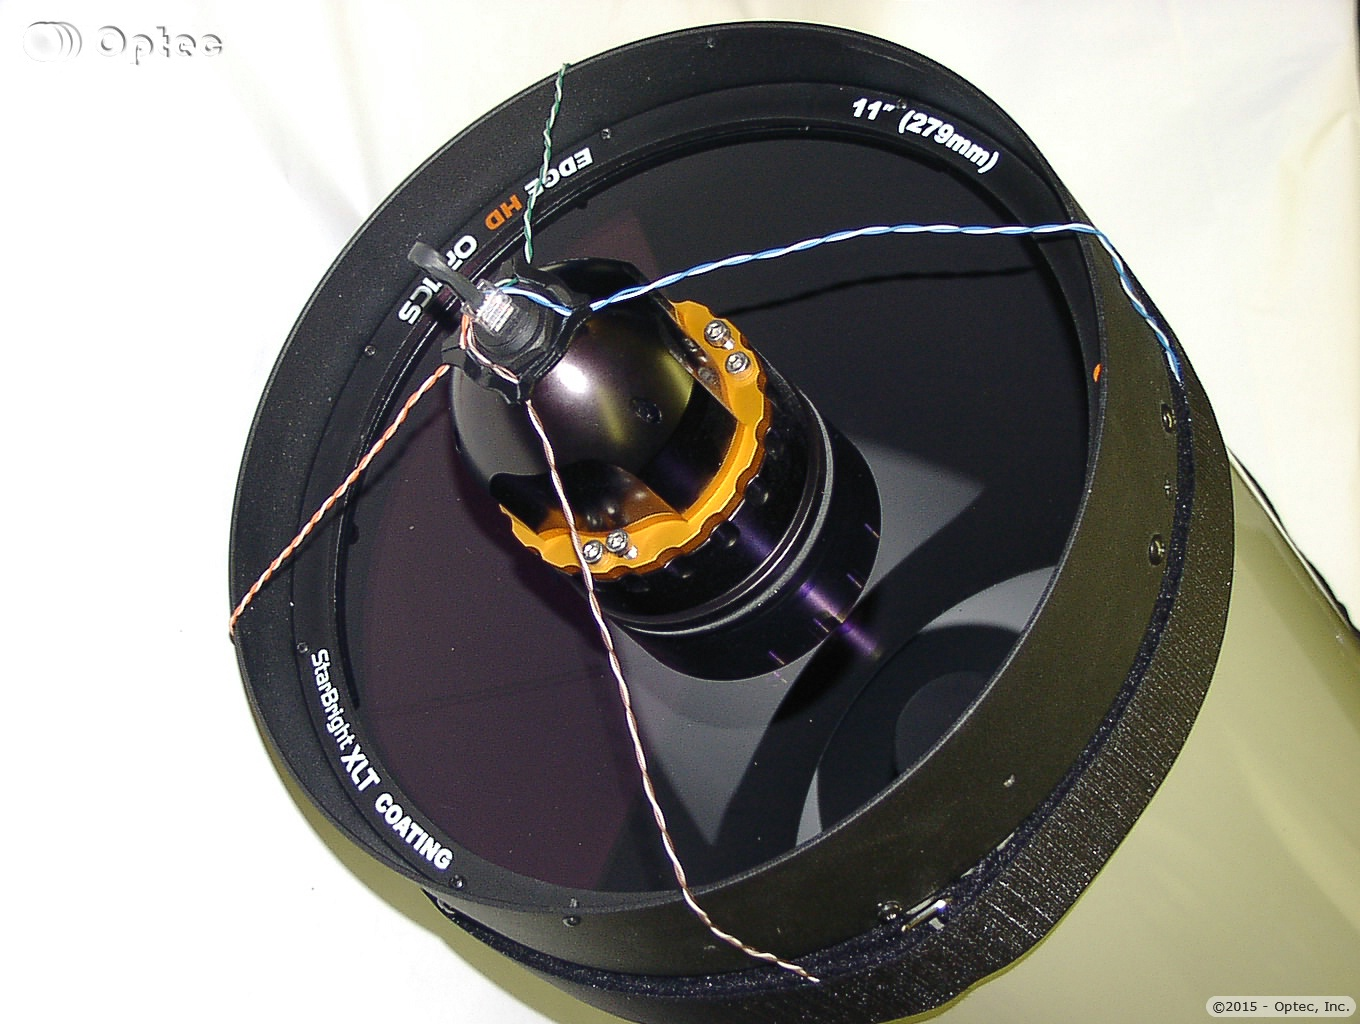 Optec Fastfocus Secondary Mirror Focusing Systems For